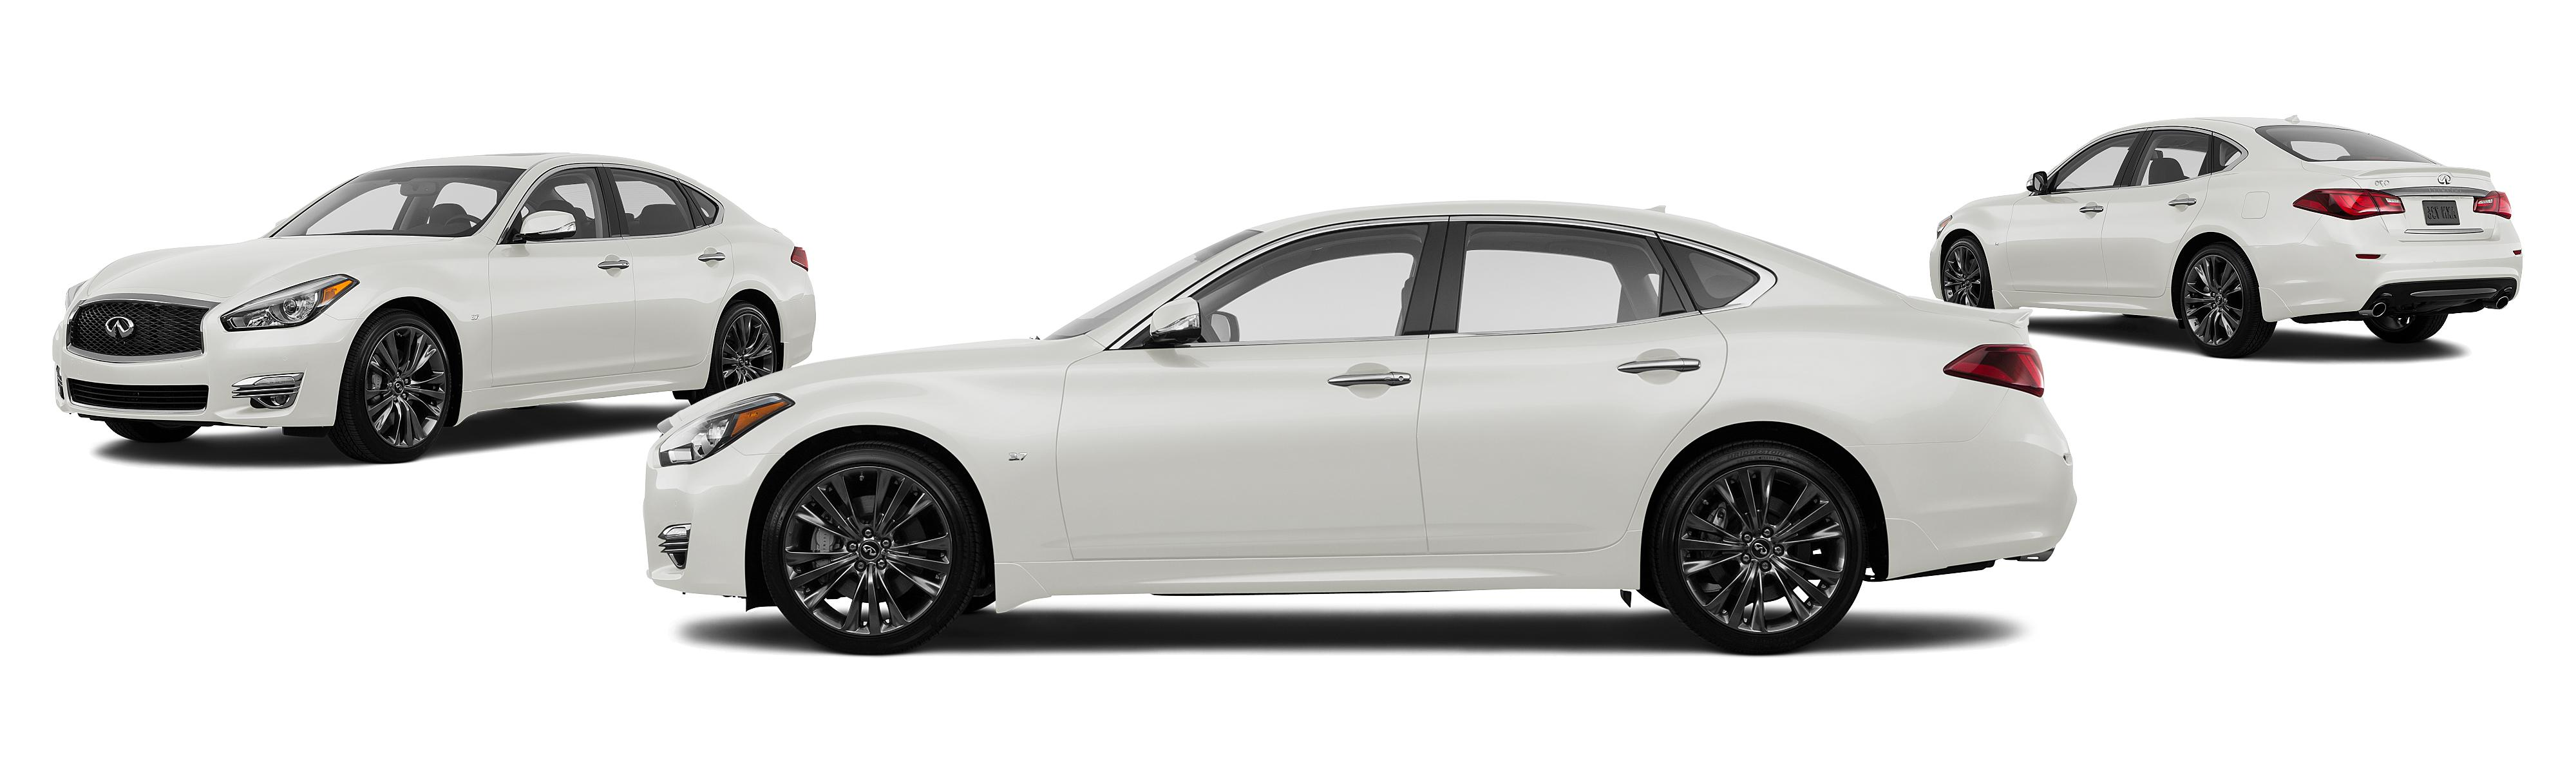 gallery lease for s are autoevolution photo here prices infiniti u us finally news infinity photos revealed the